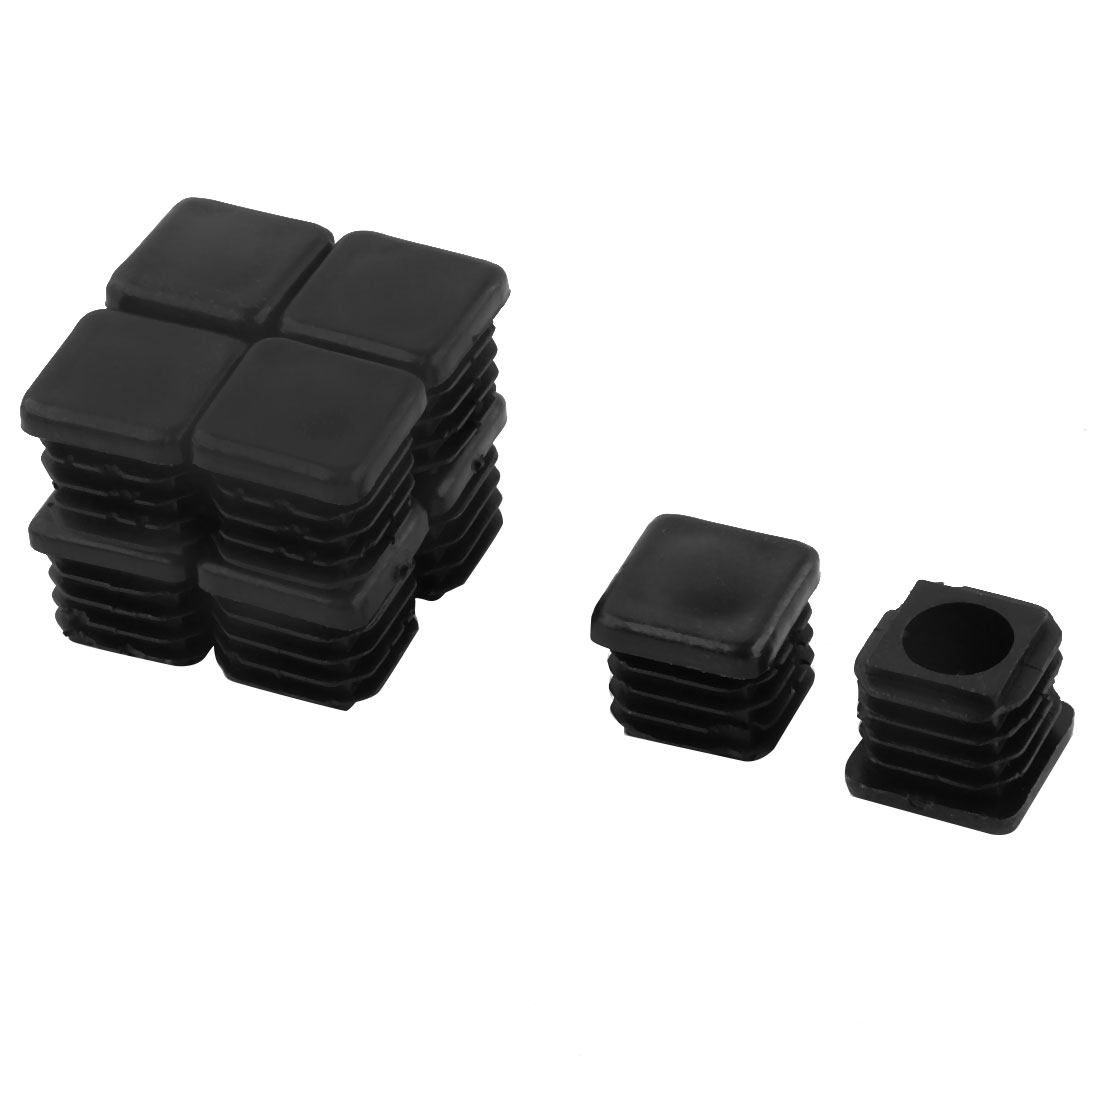 19mm x 19mm Plastic Square Tube Inserts End Blanking Caps Black 10 Pcs